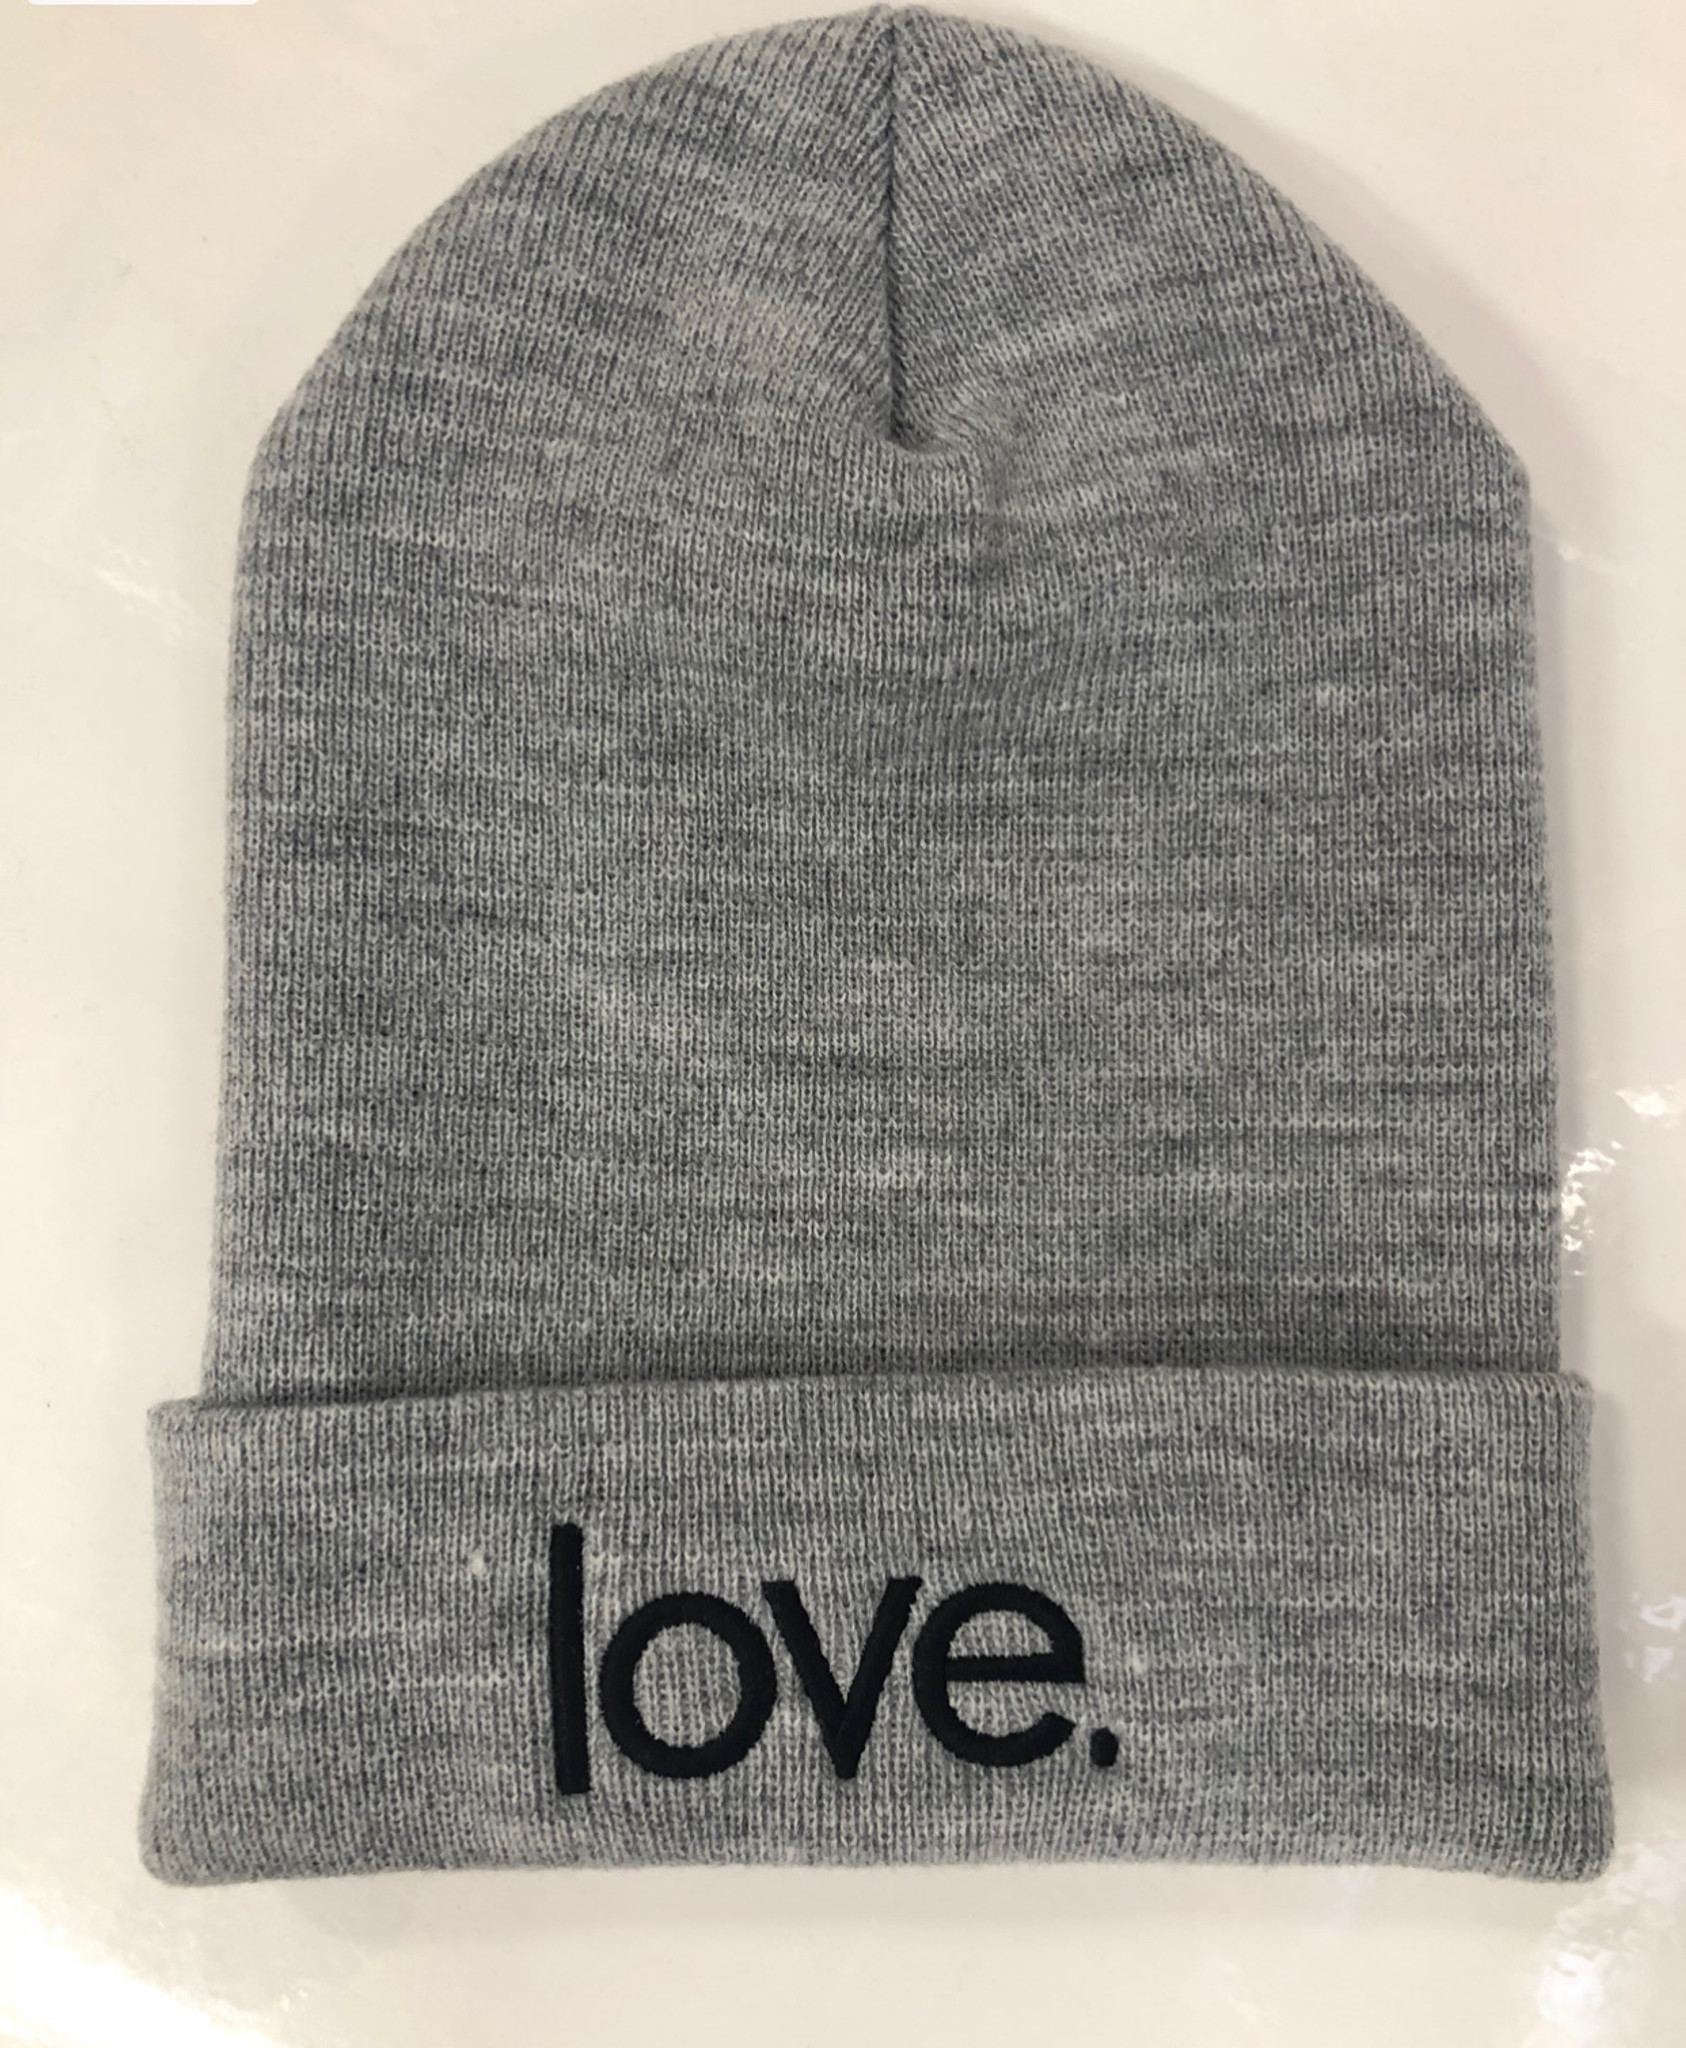 LOVE. EMBROIDERED CUFFED KNIT BEANIE (Grey)